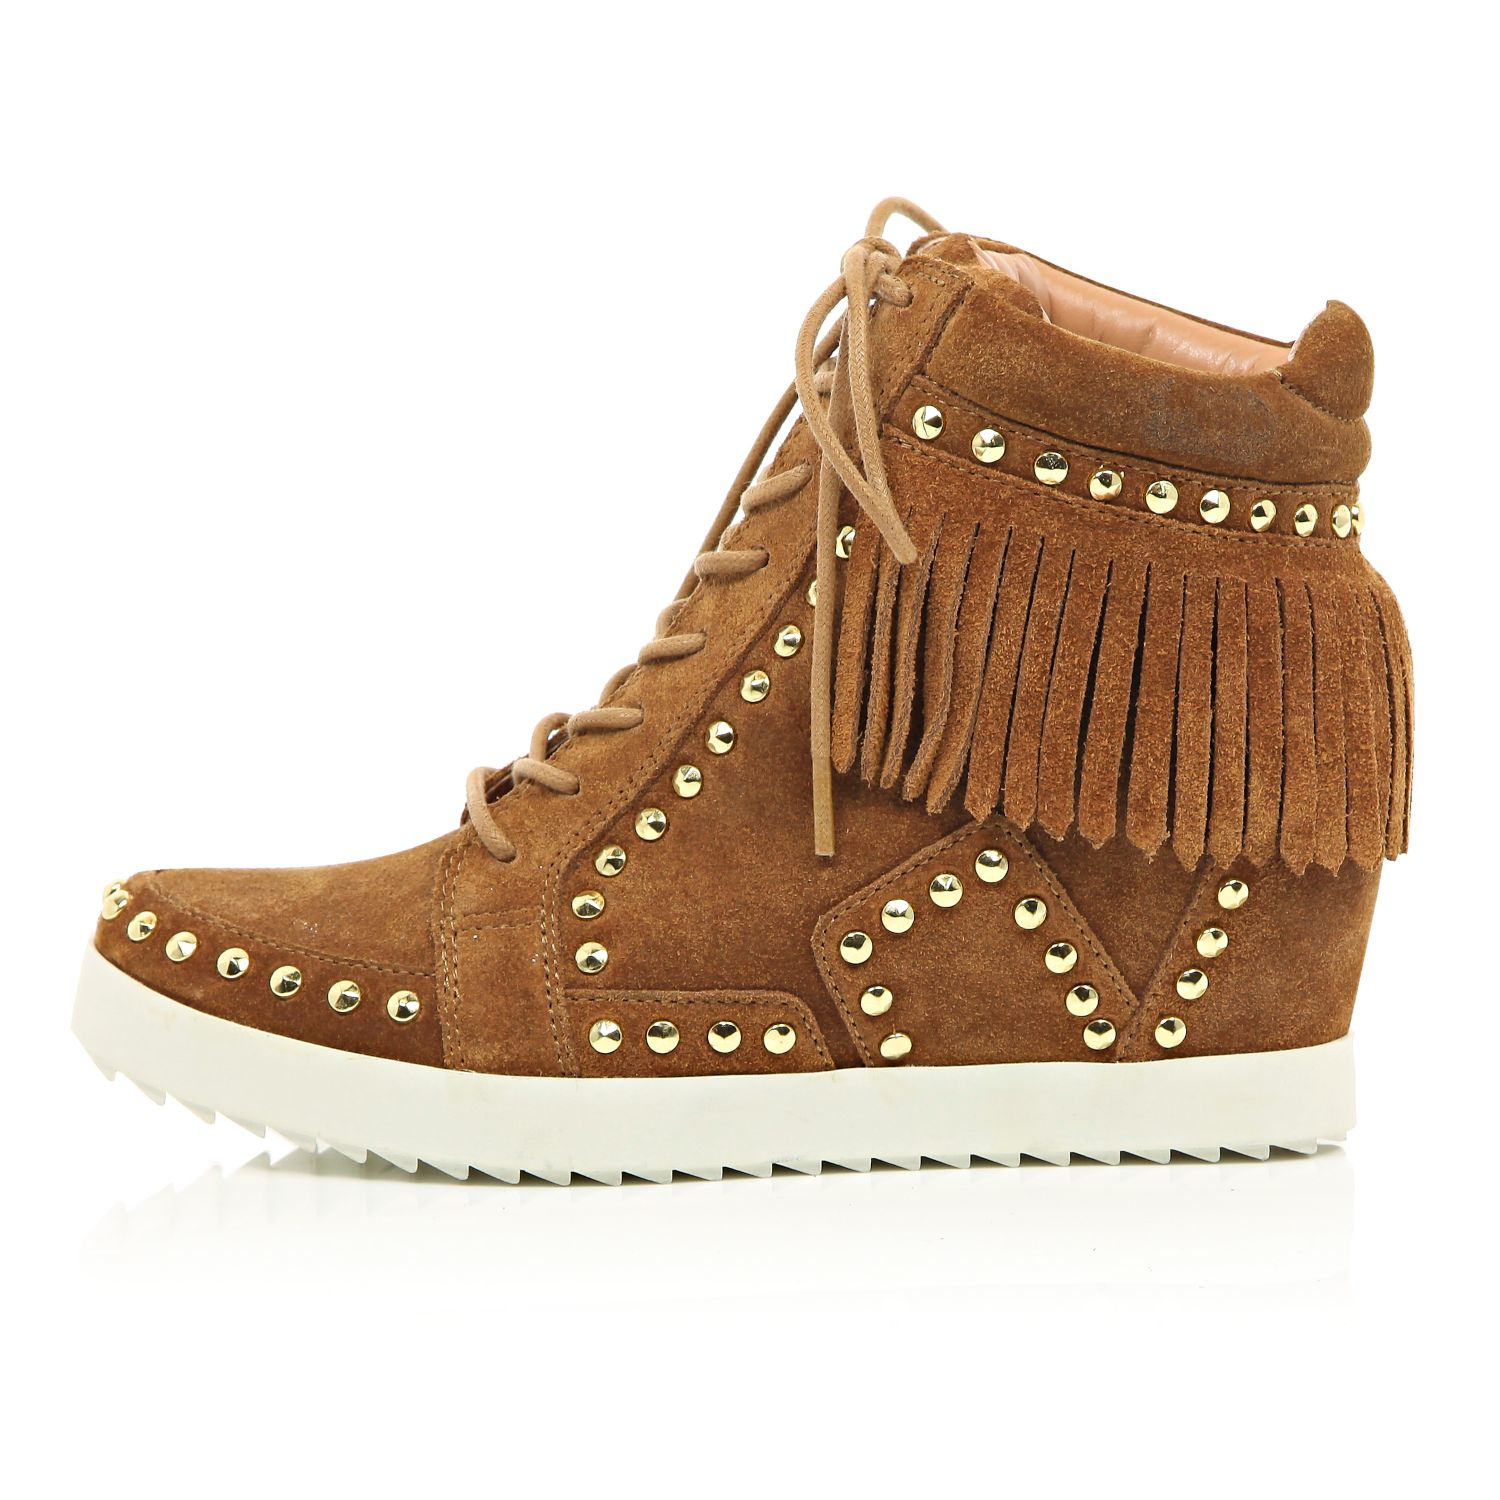 71cd28dee392 Lyst - River Island Tan Suede Fringed High Top Wedge Trainers in Brown